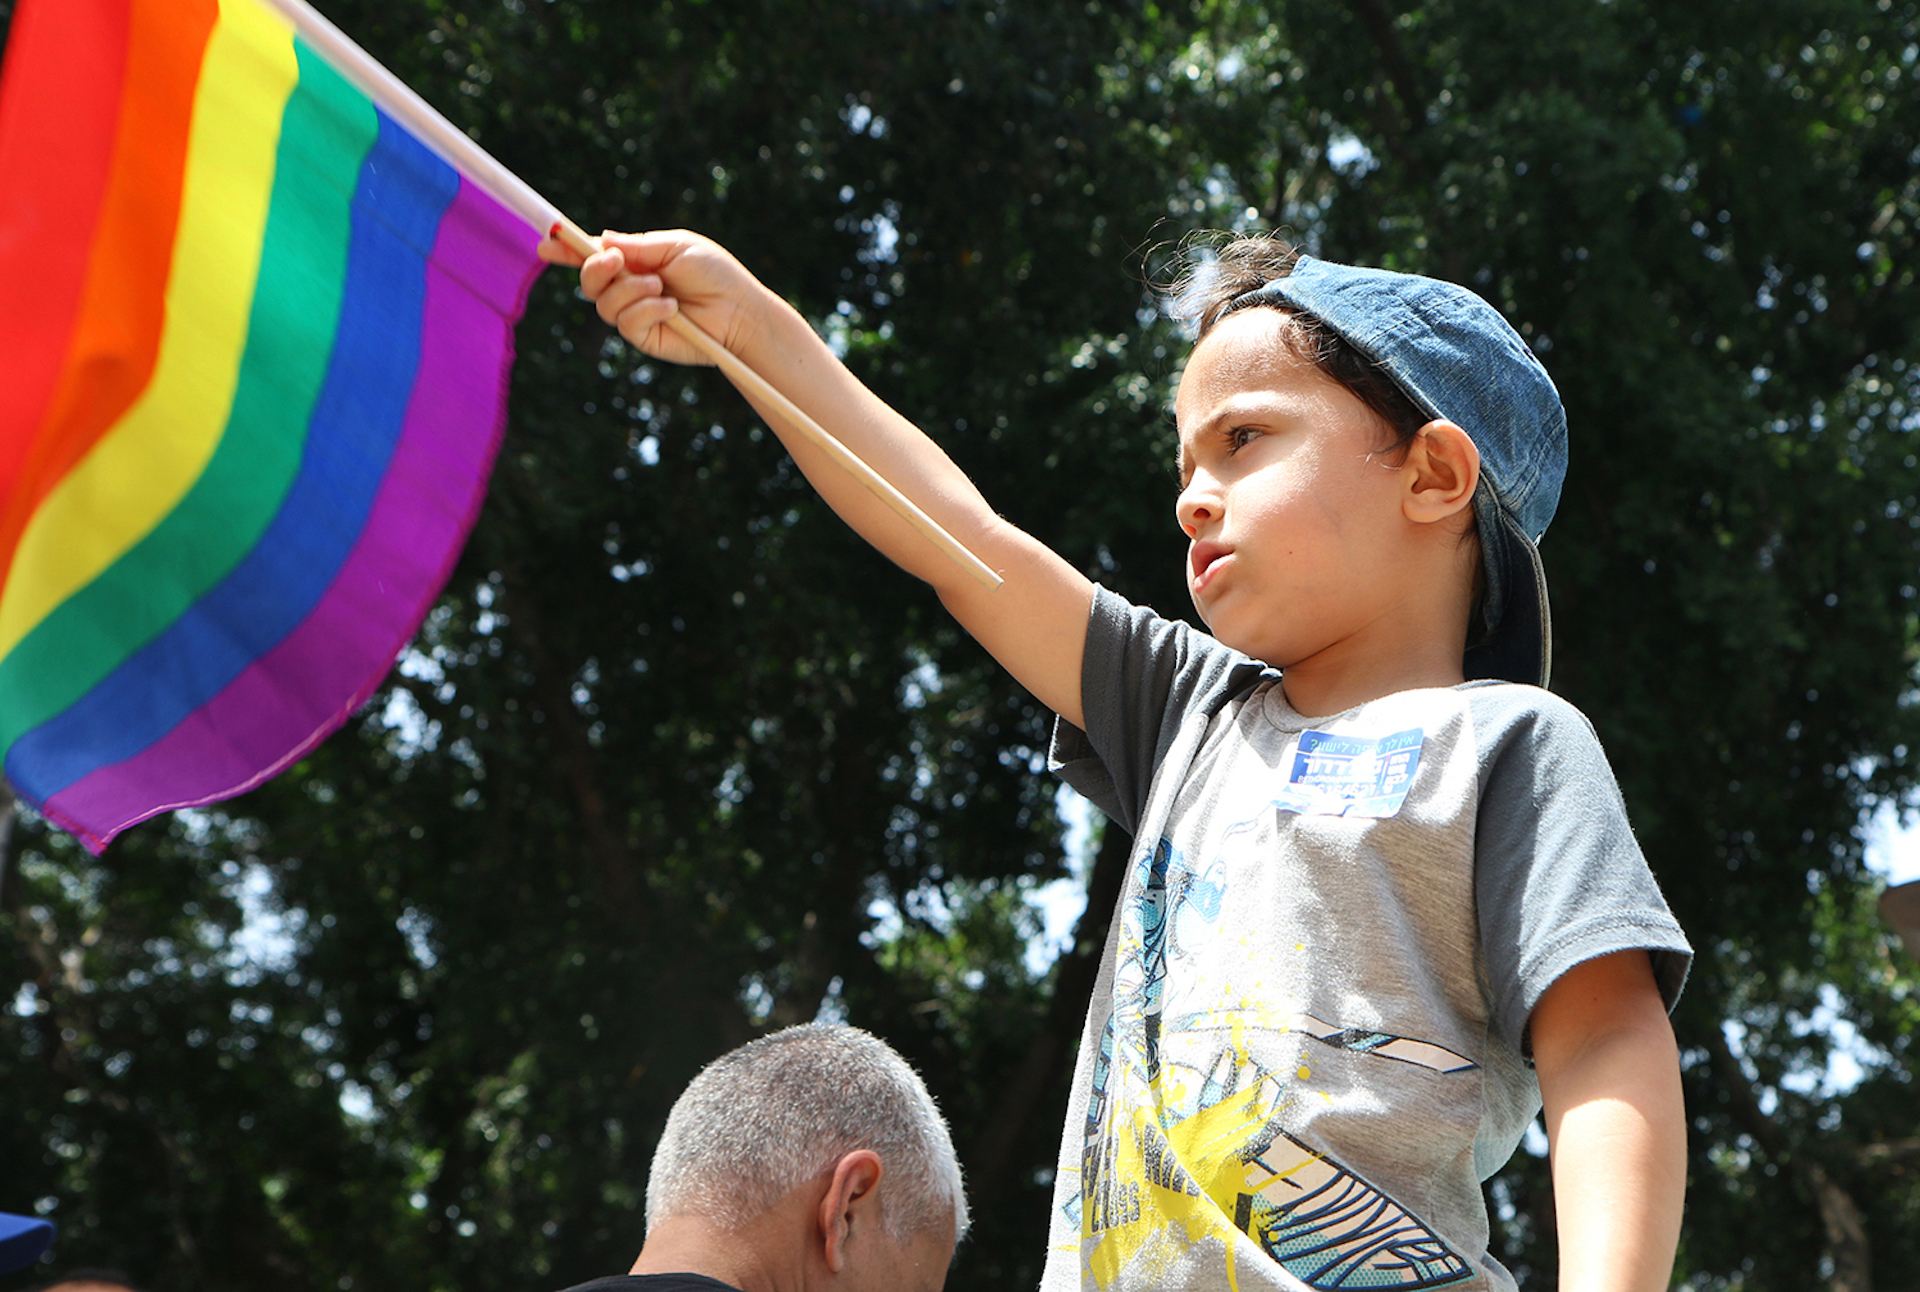 Young participant waving a rainbow flag during the concert that marked the beginning of the 2016 Gay Pride Parade in Tel Aviv. Monica Espitia/CUNY J